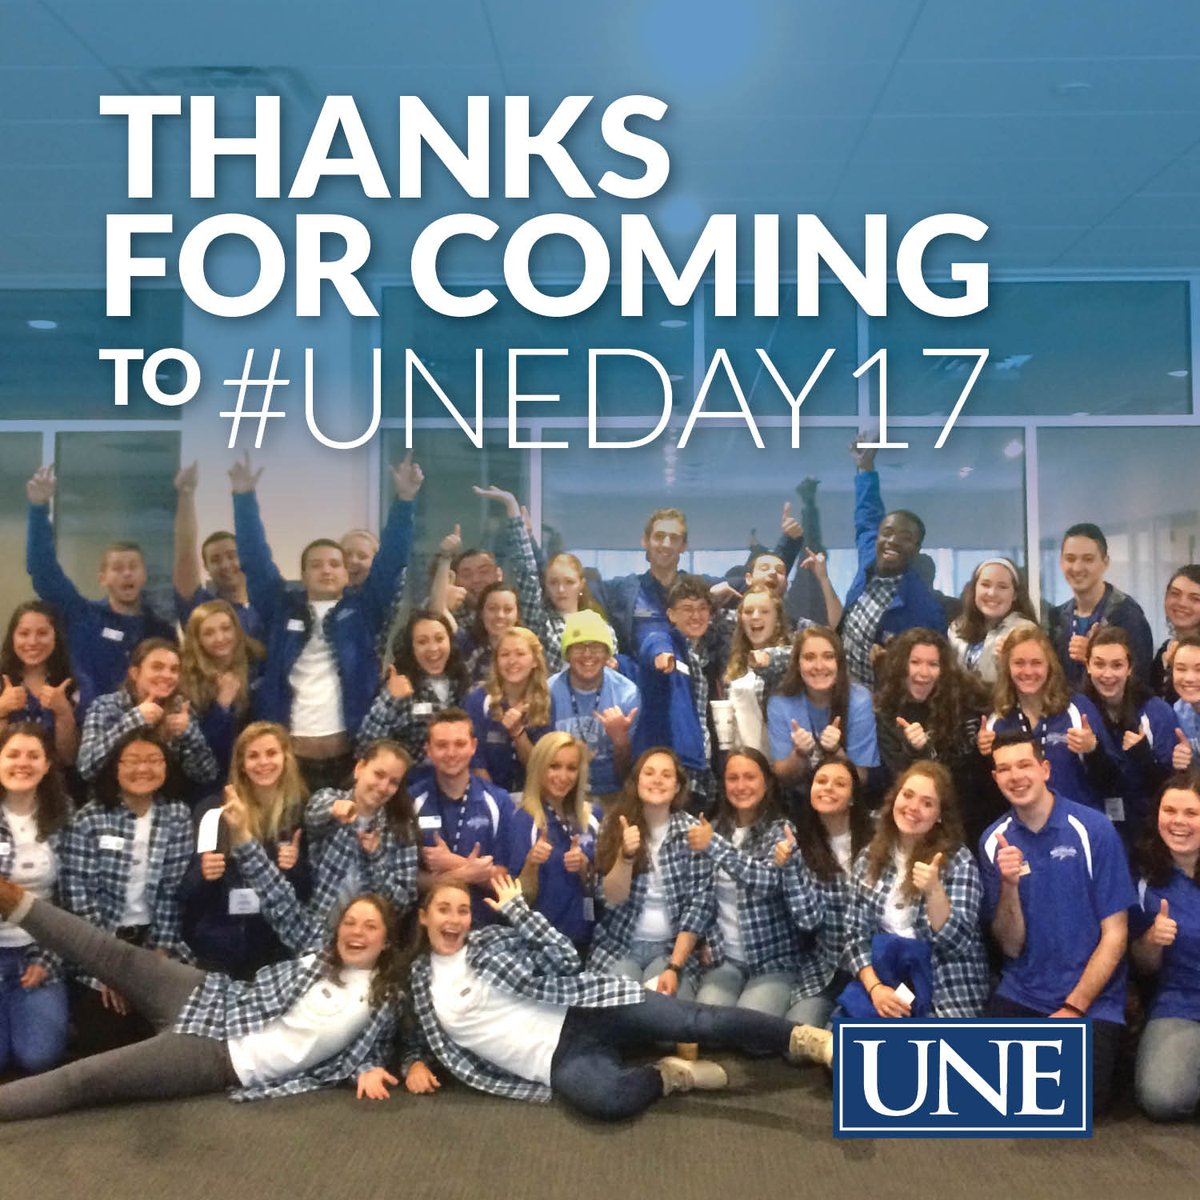 Thank you for coming we hope you had a wonderful time and that we see you again soon! #UNEday17 #UNE <br>http://pic.twitter.com/NflkyefBA0